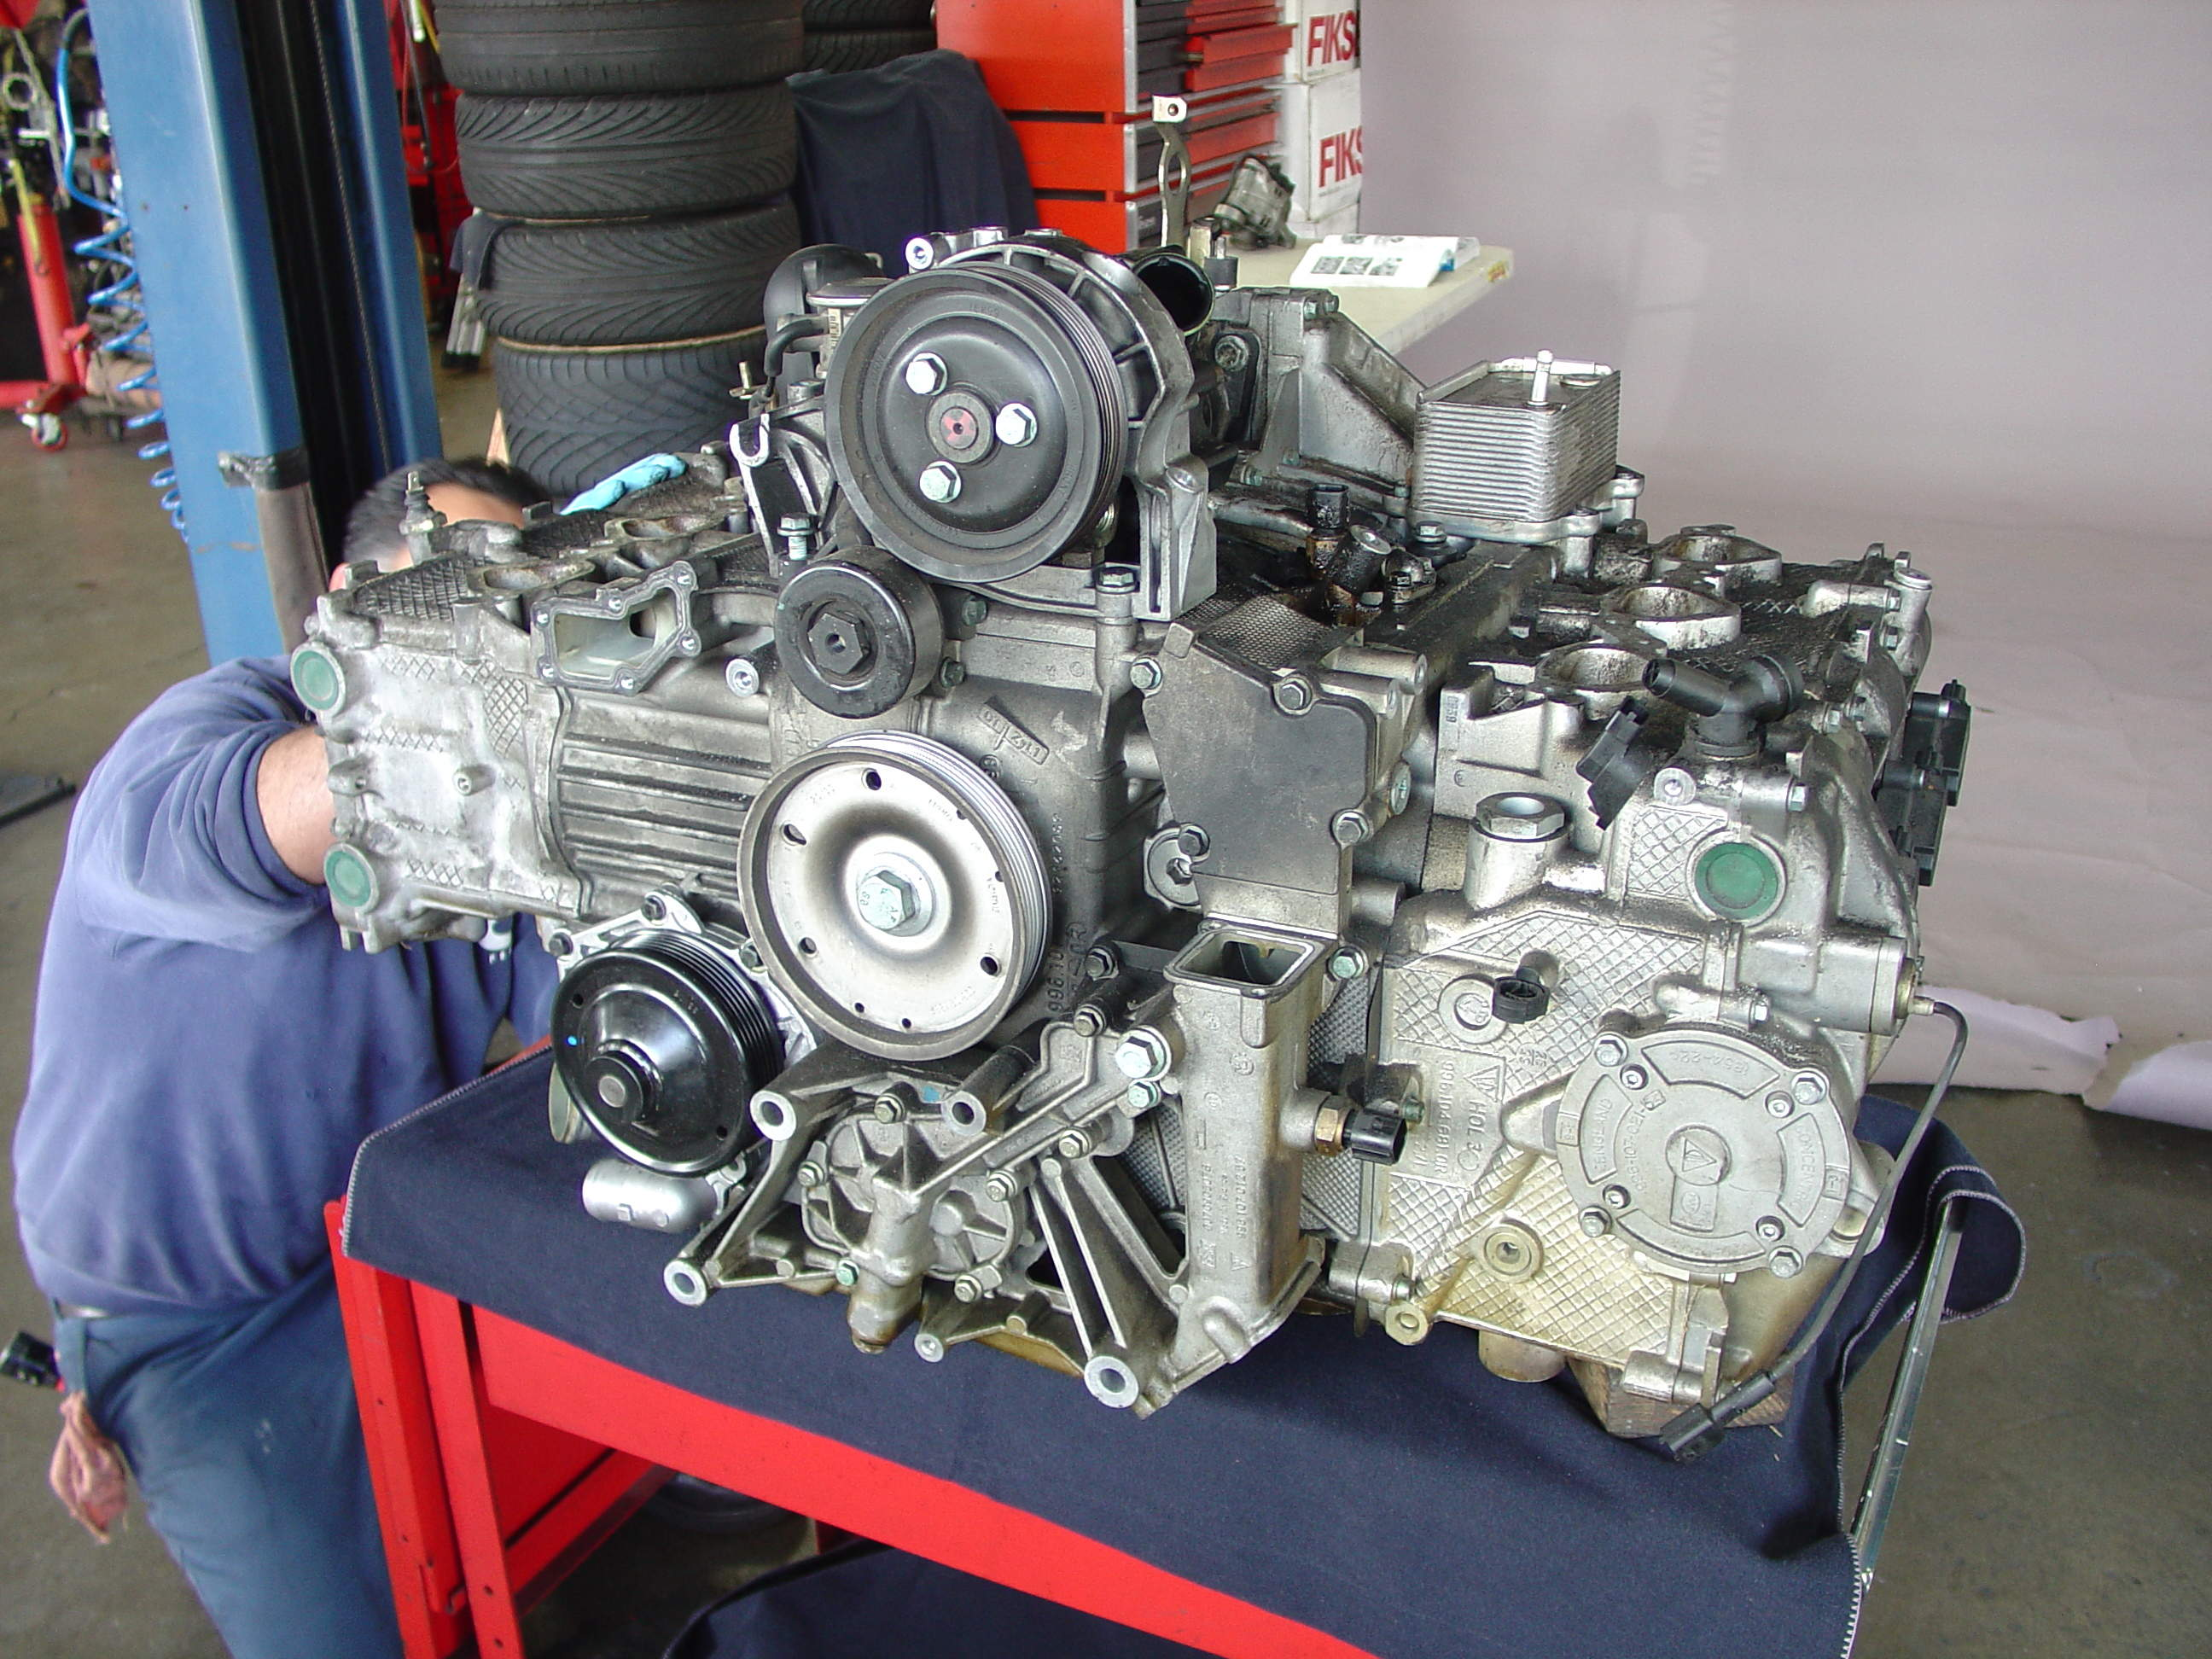 pelican technical article porsche boxster 996 engine teardown large image